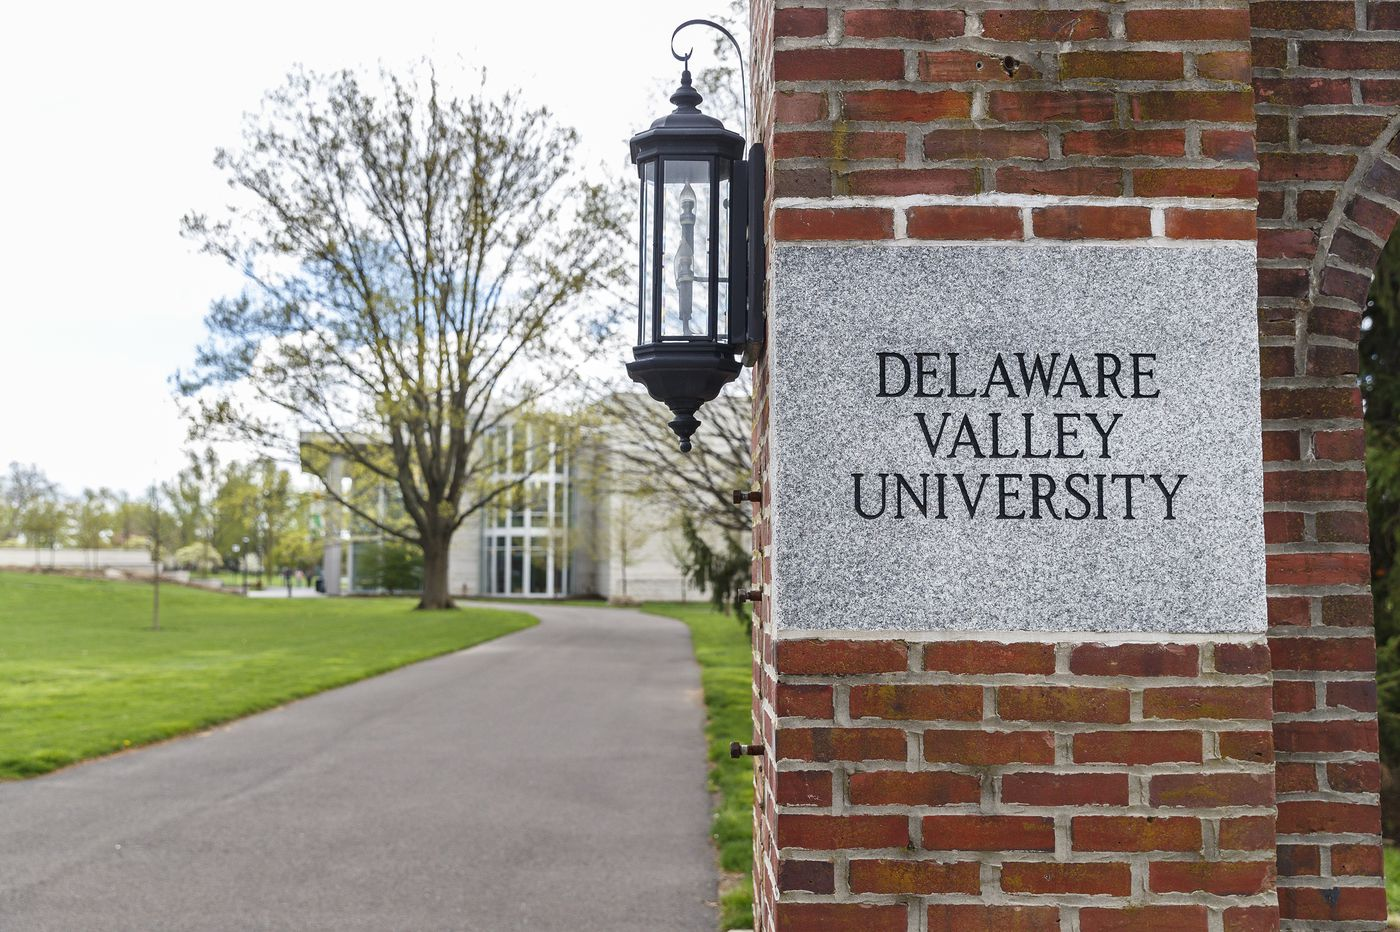 Delaware Valley University will no longer require SAT, ACT scores from applicants in most programs